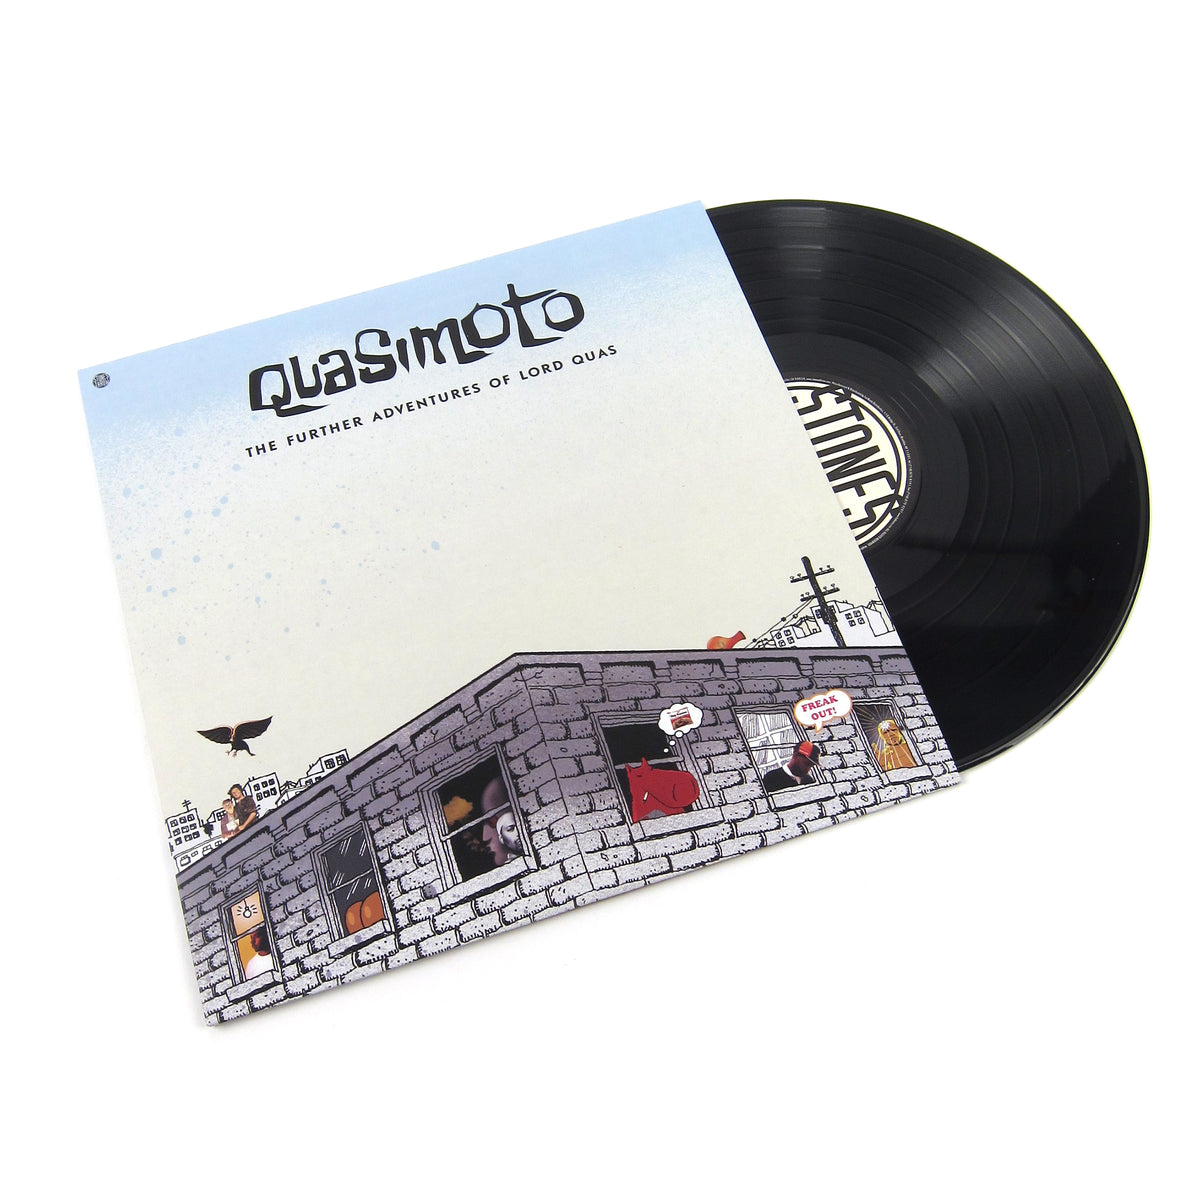 Quasimoto: The Further Adventures Of Lord Quas (Madlib) 2LP